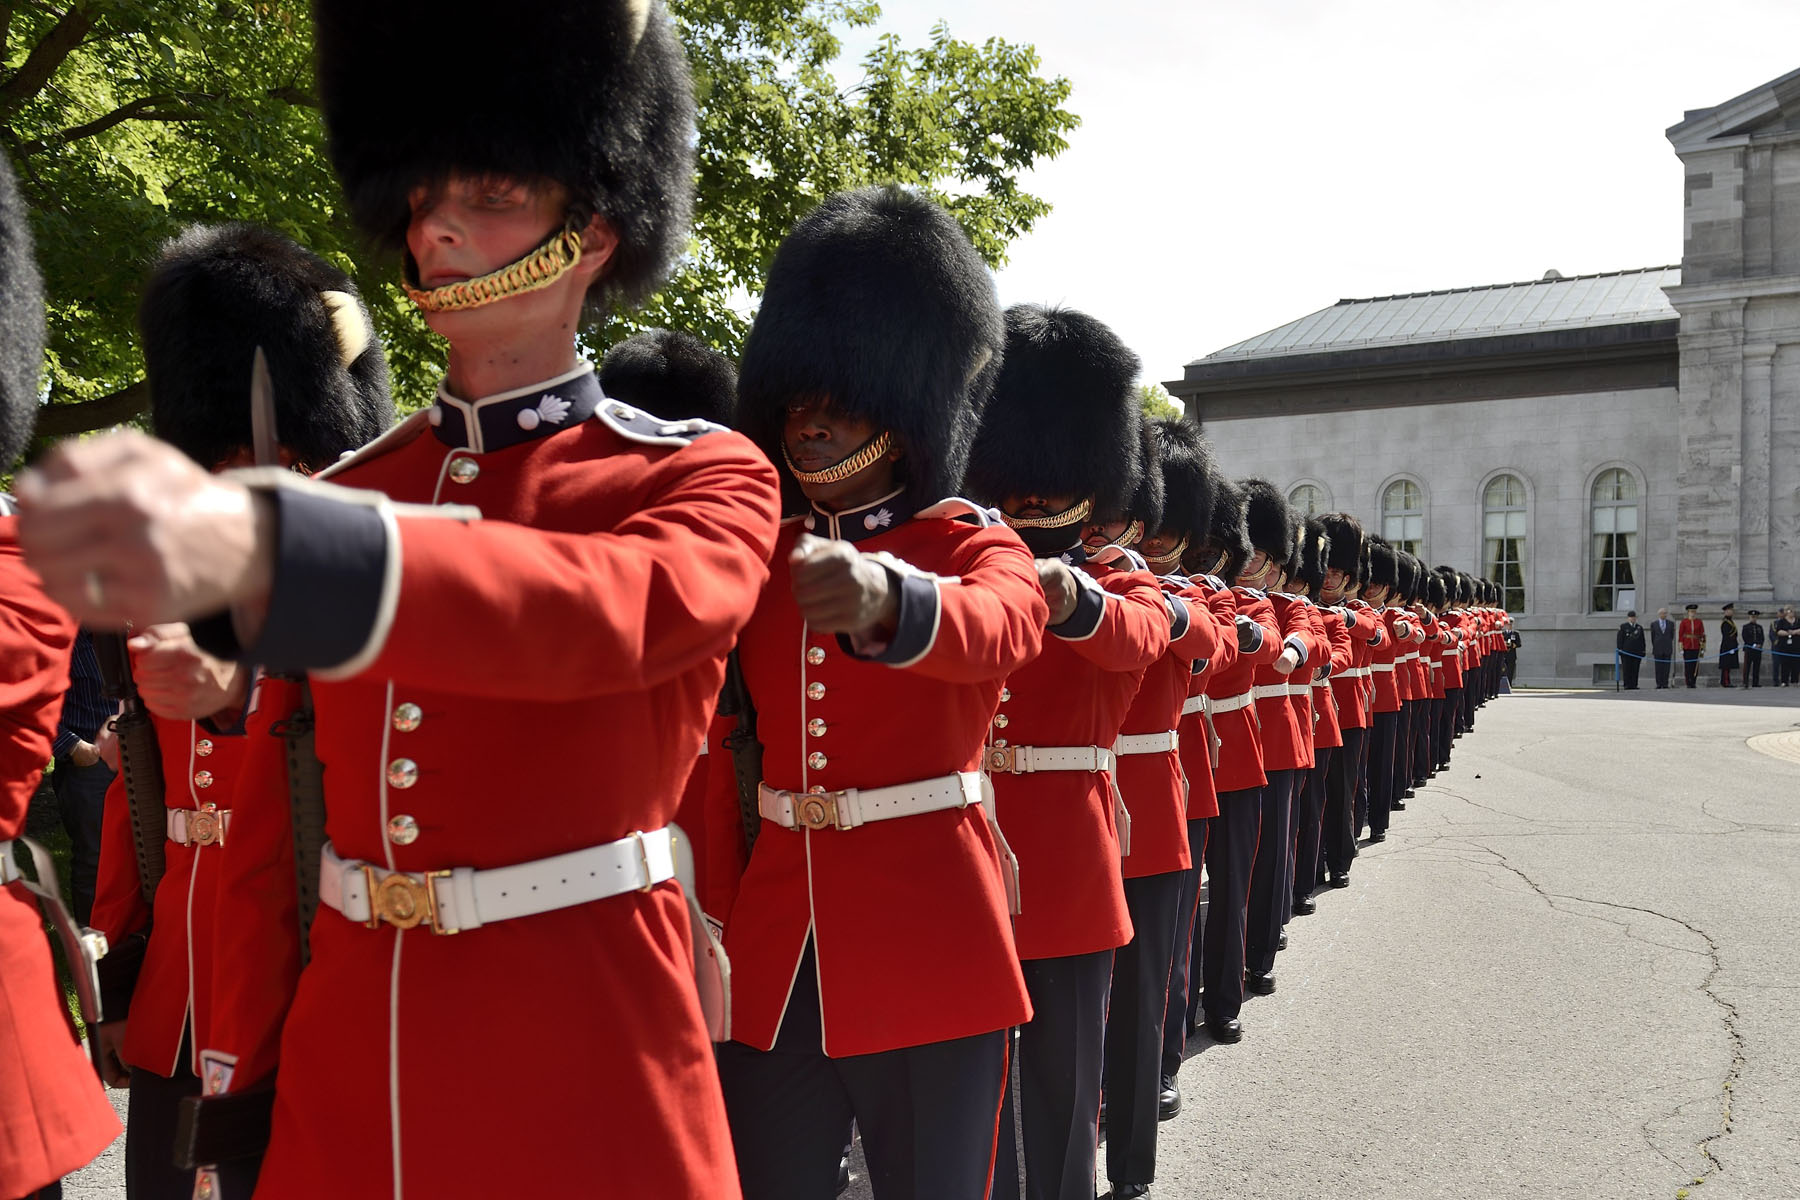 During the Relief of the Sentries, which runs, every hour, on the hour, from 9 a.m. to 5 p.m., all days during Summer, Sentries march to their posts in front of Rideau Hall and at Sussex Gate.